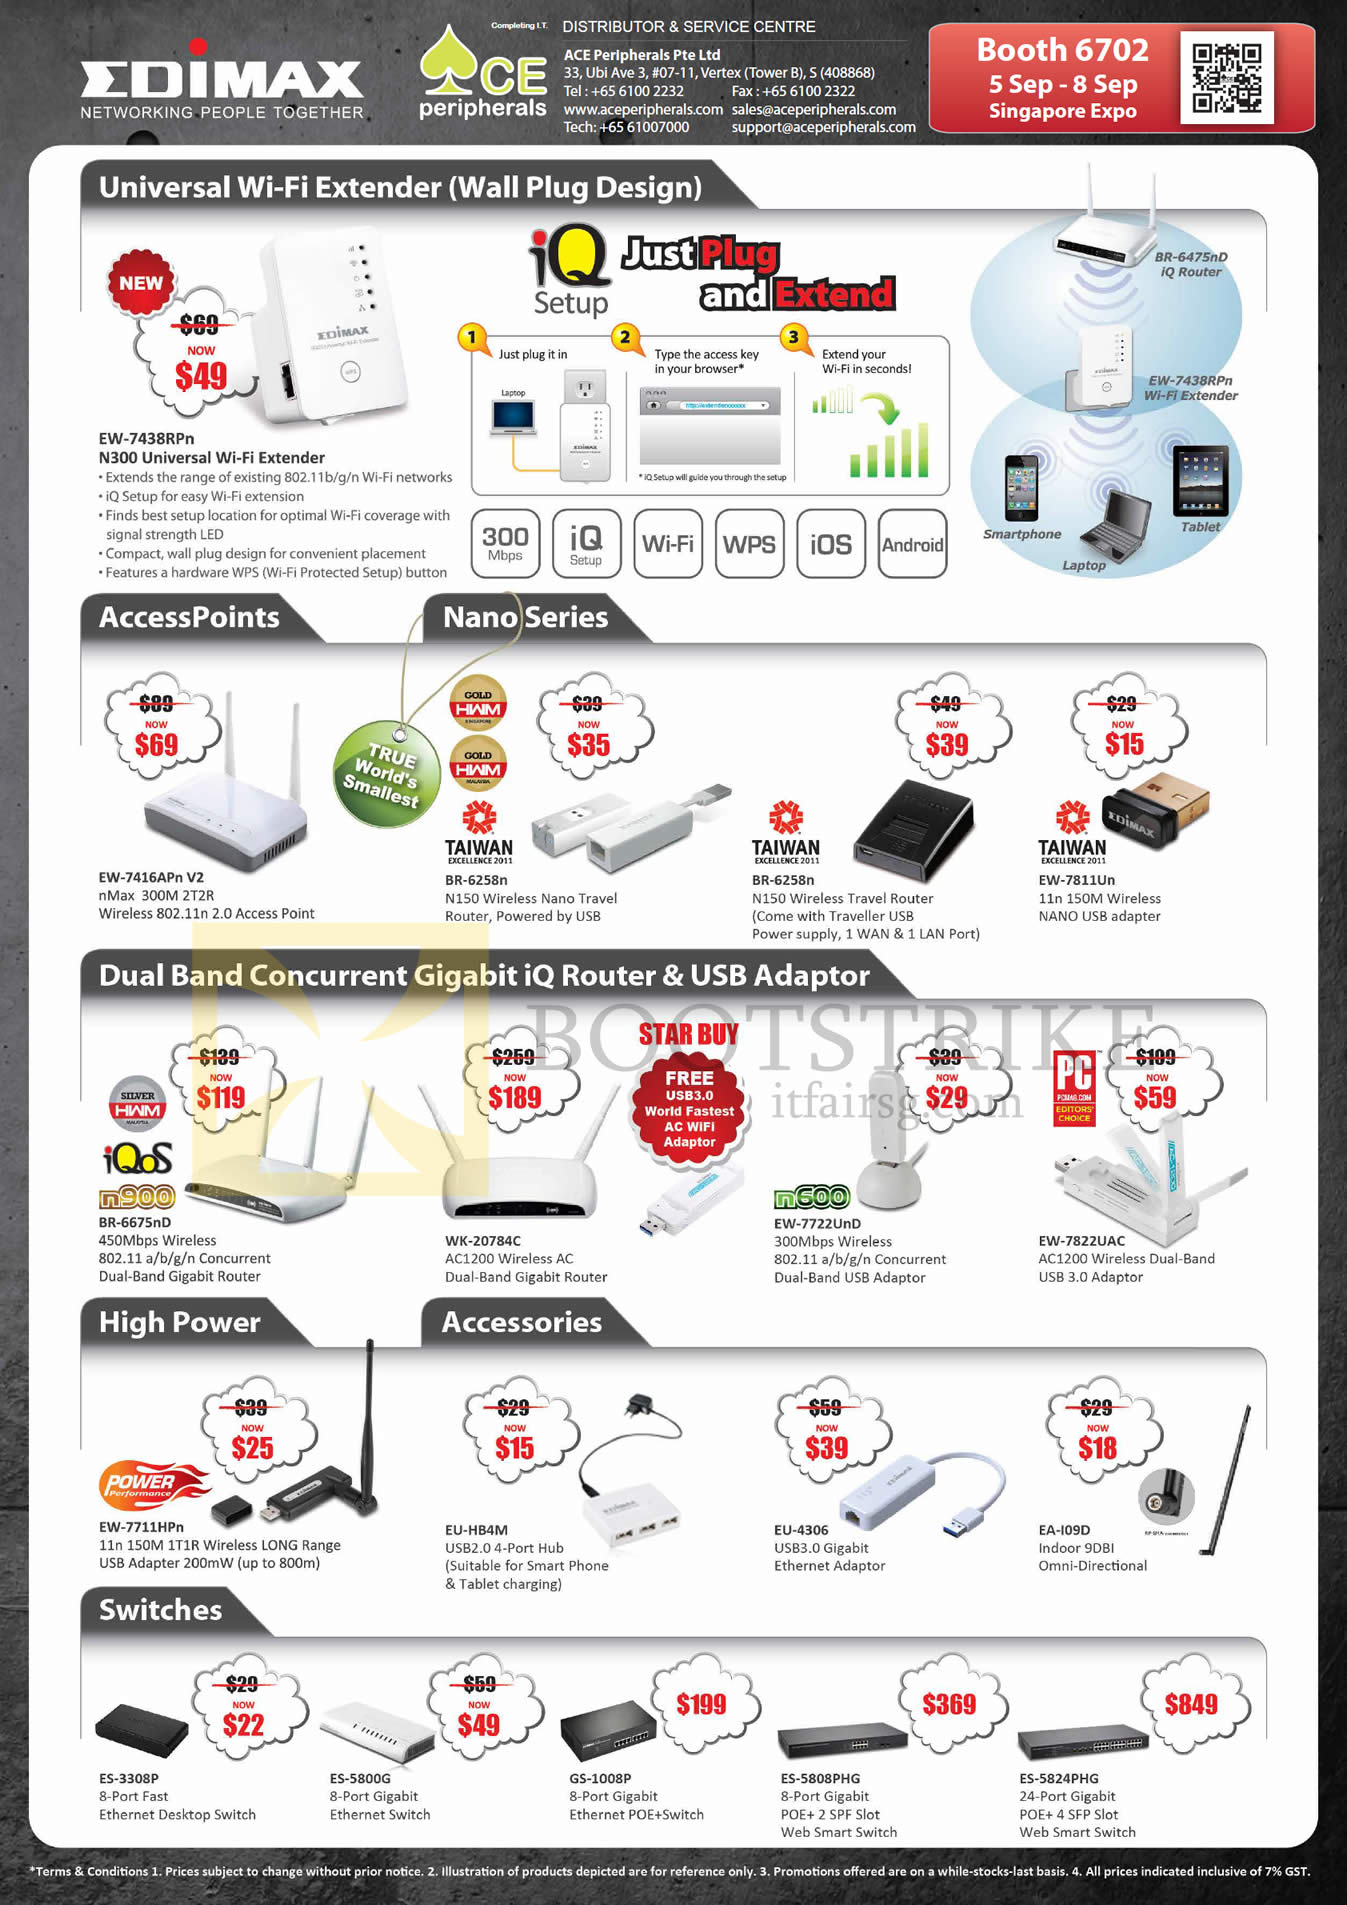 COMEX 2013 price list image brochure of Ace Peripherals Edimax Networking Wireless Extender, Access Points, Router, USB Ethernet Adapter, POE Switches